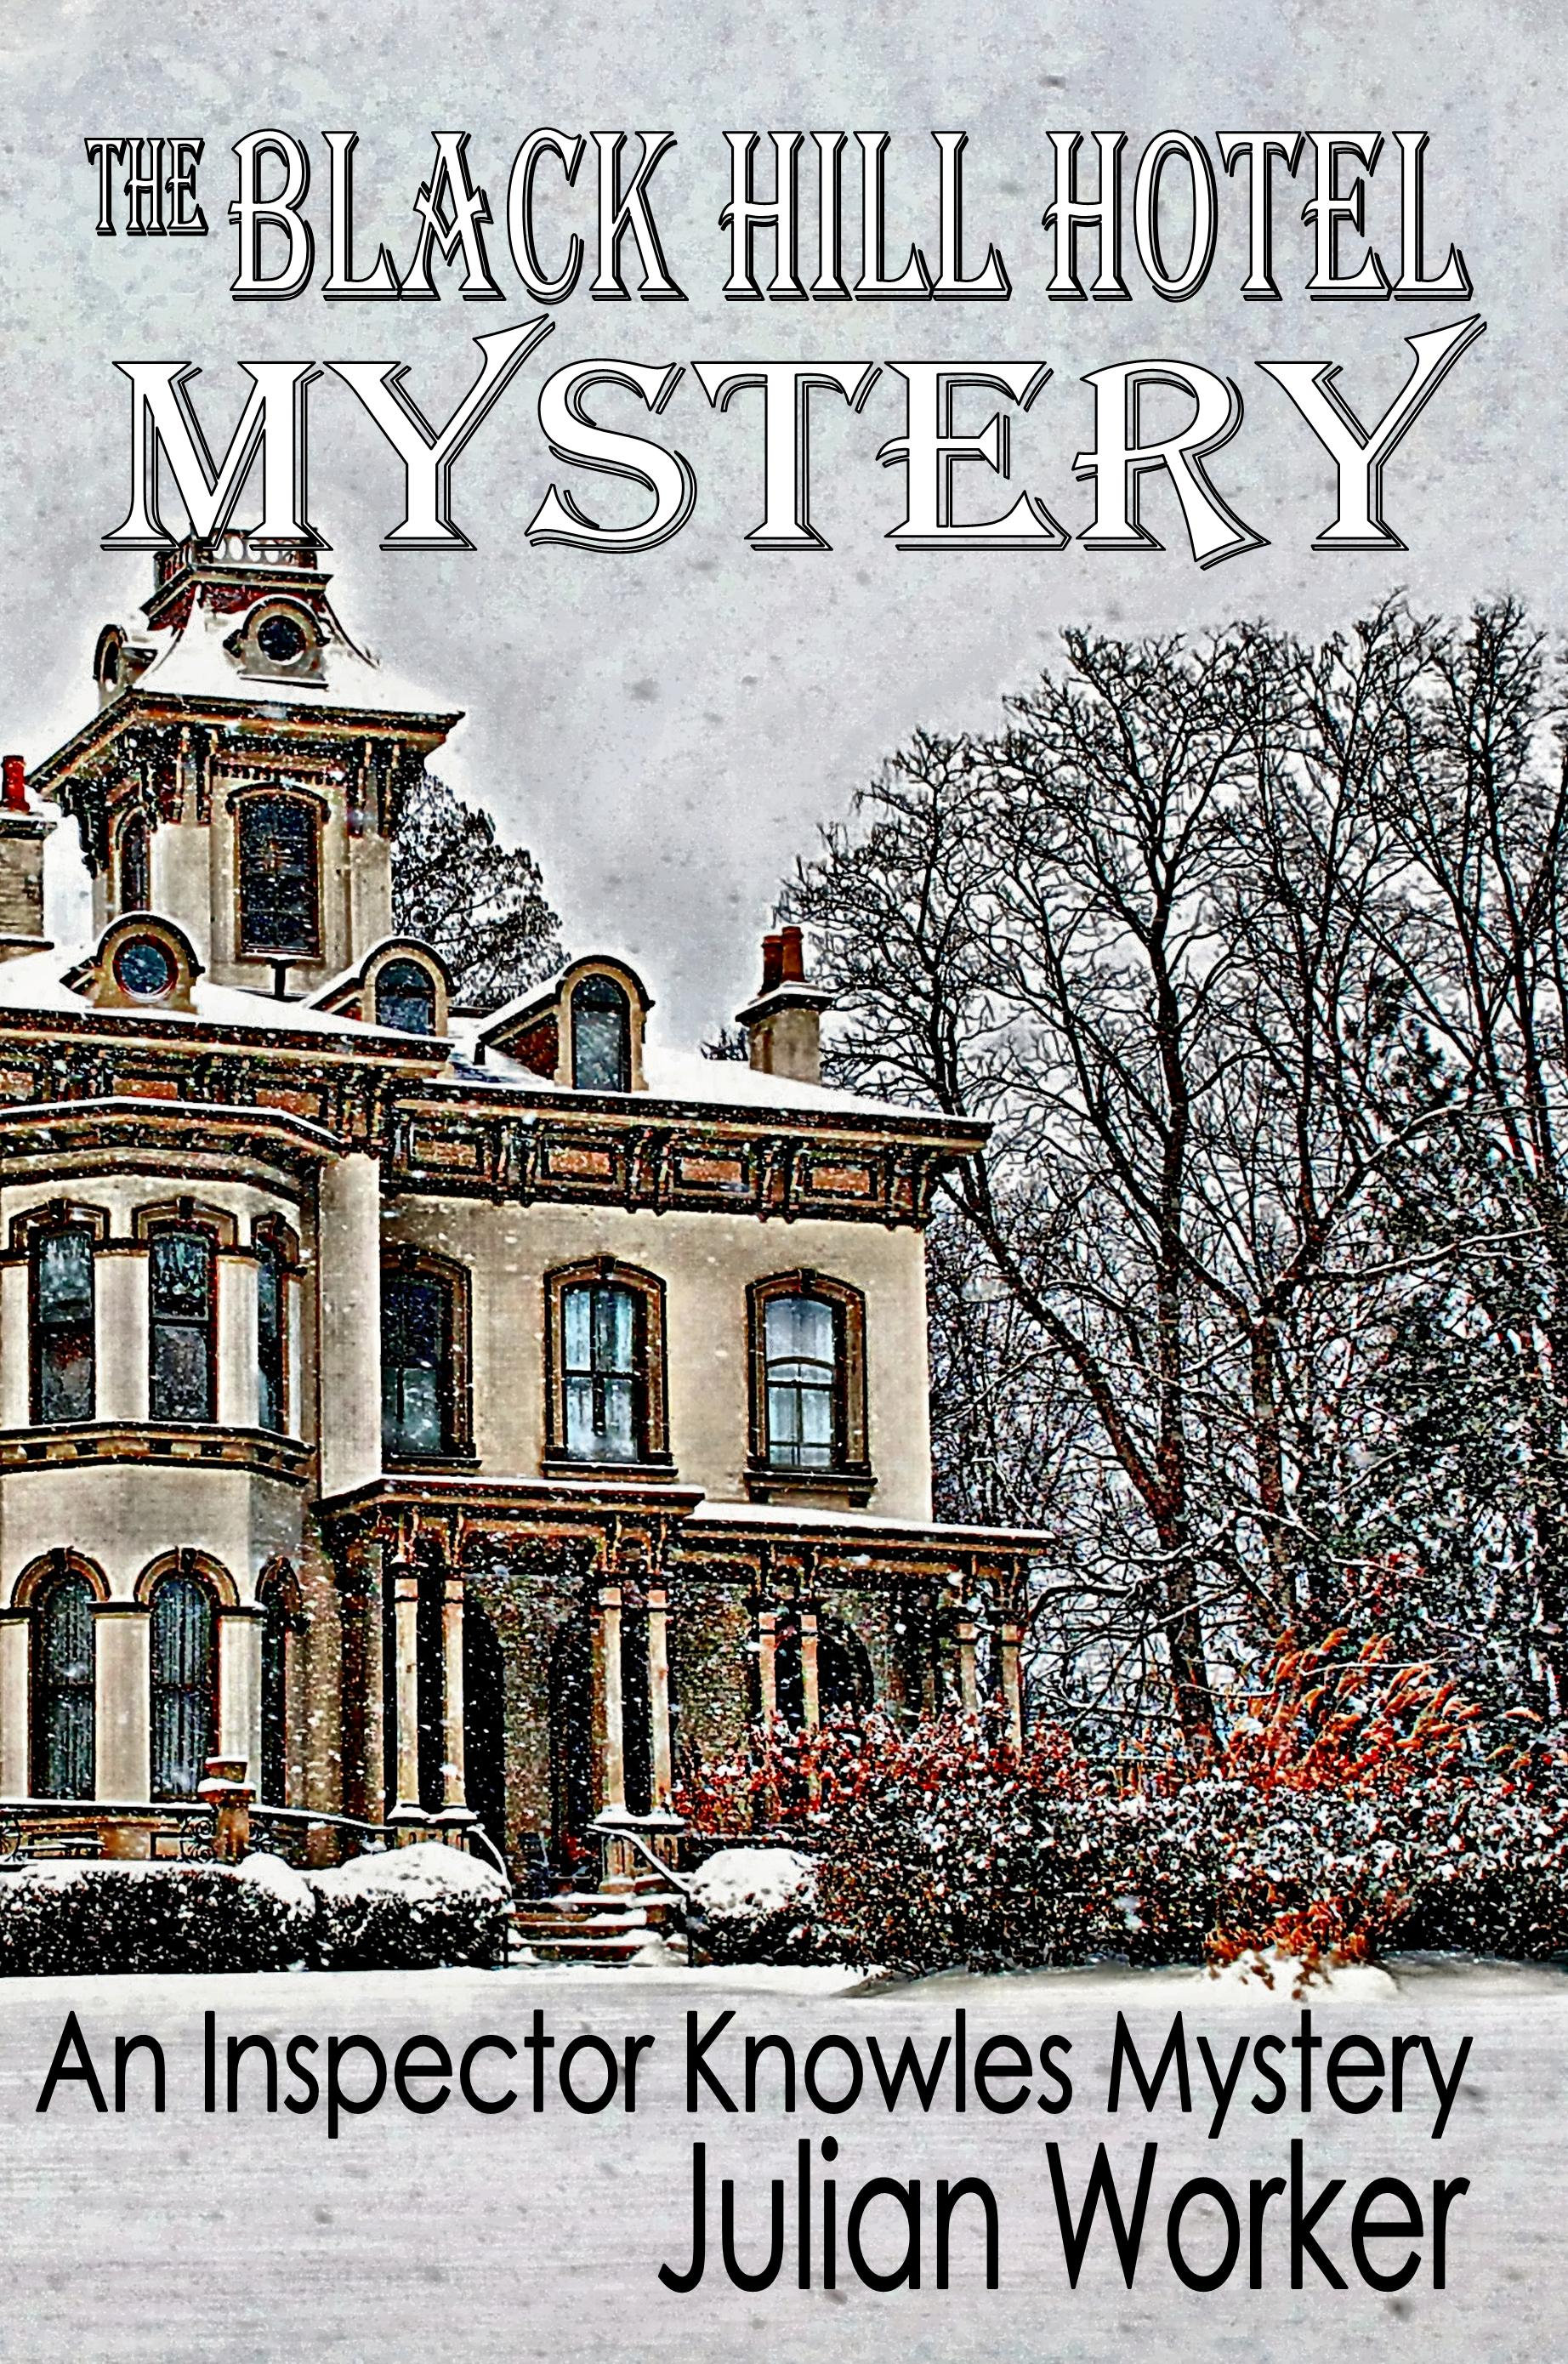 The Black Hill Hotel Mystery – 9